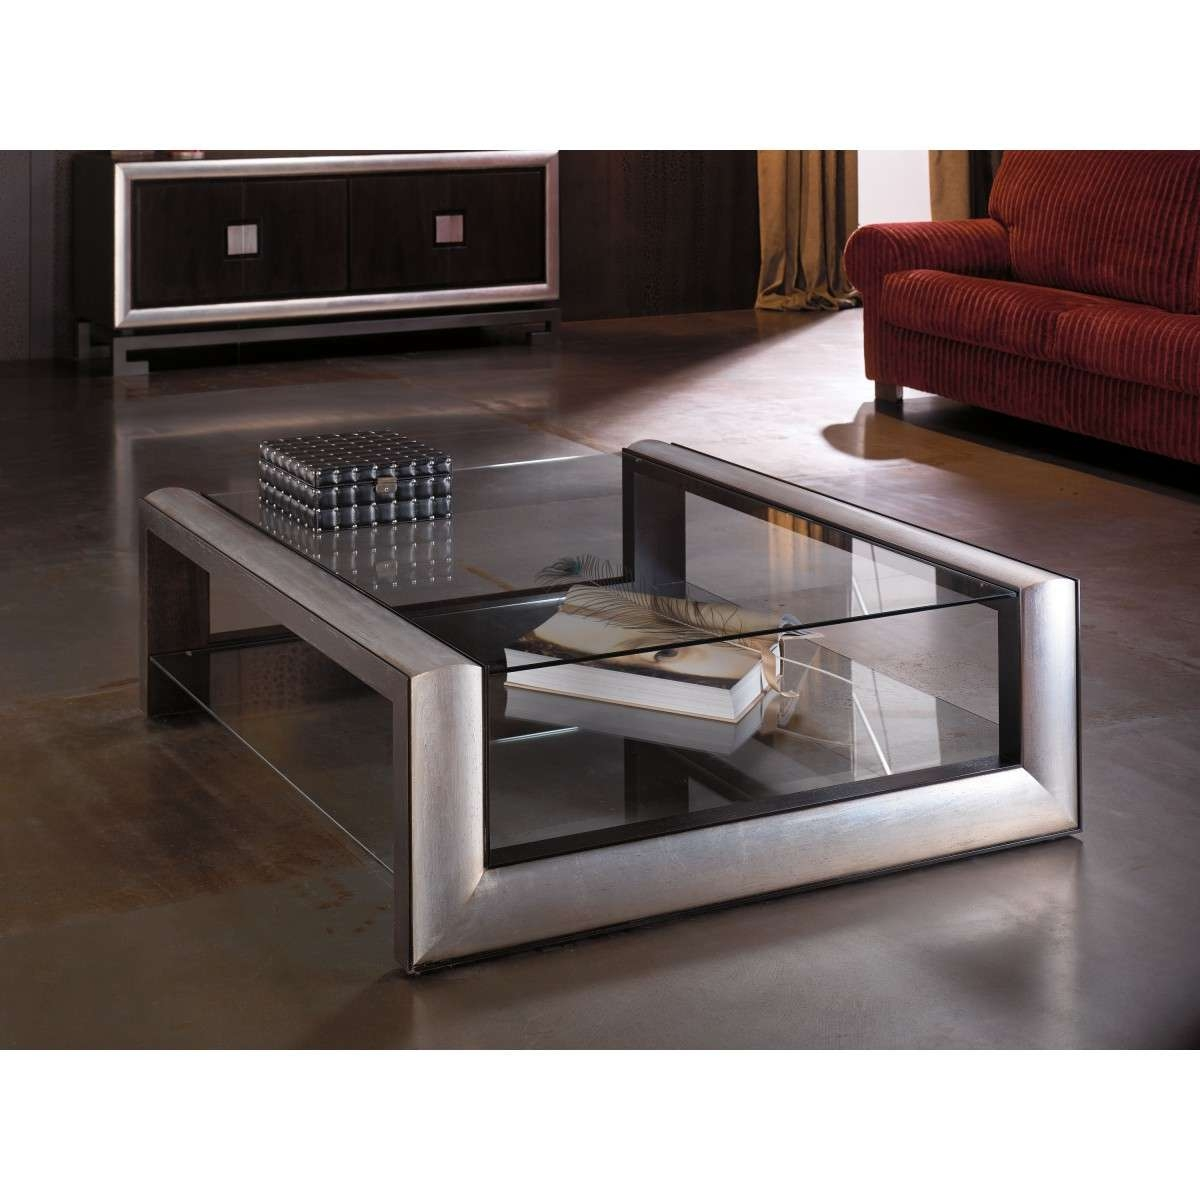 Wood And Glass Coffee Table Throughout Newest Retro Smoked Glass Coffee Tables (View 8 of 20)